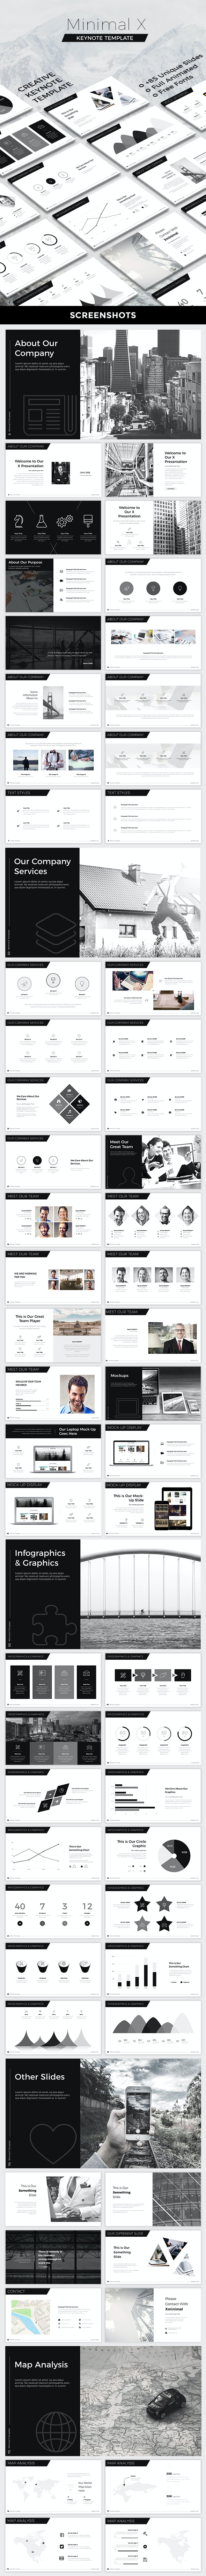 Minimal X Keynote Template - Creative Keynote Templates